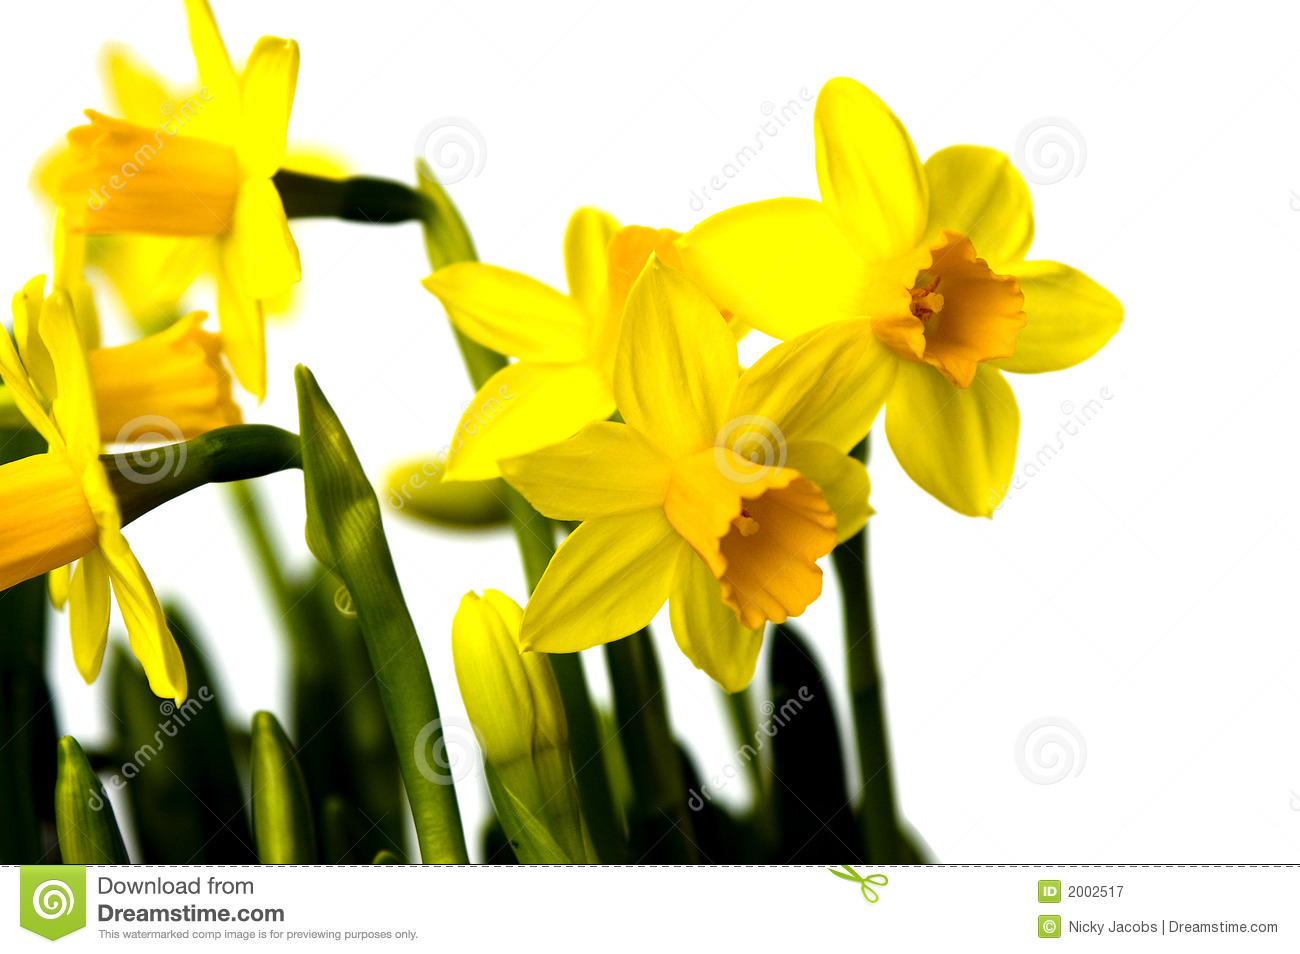 Easter flowers lily daffodil stock image image of lily nature easter flowers lily daffodil izmirmasajfo